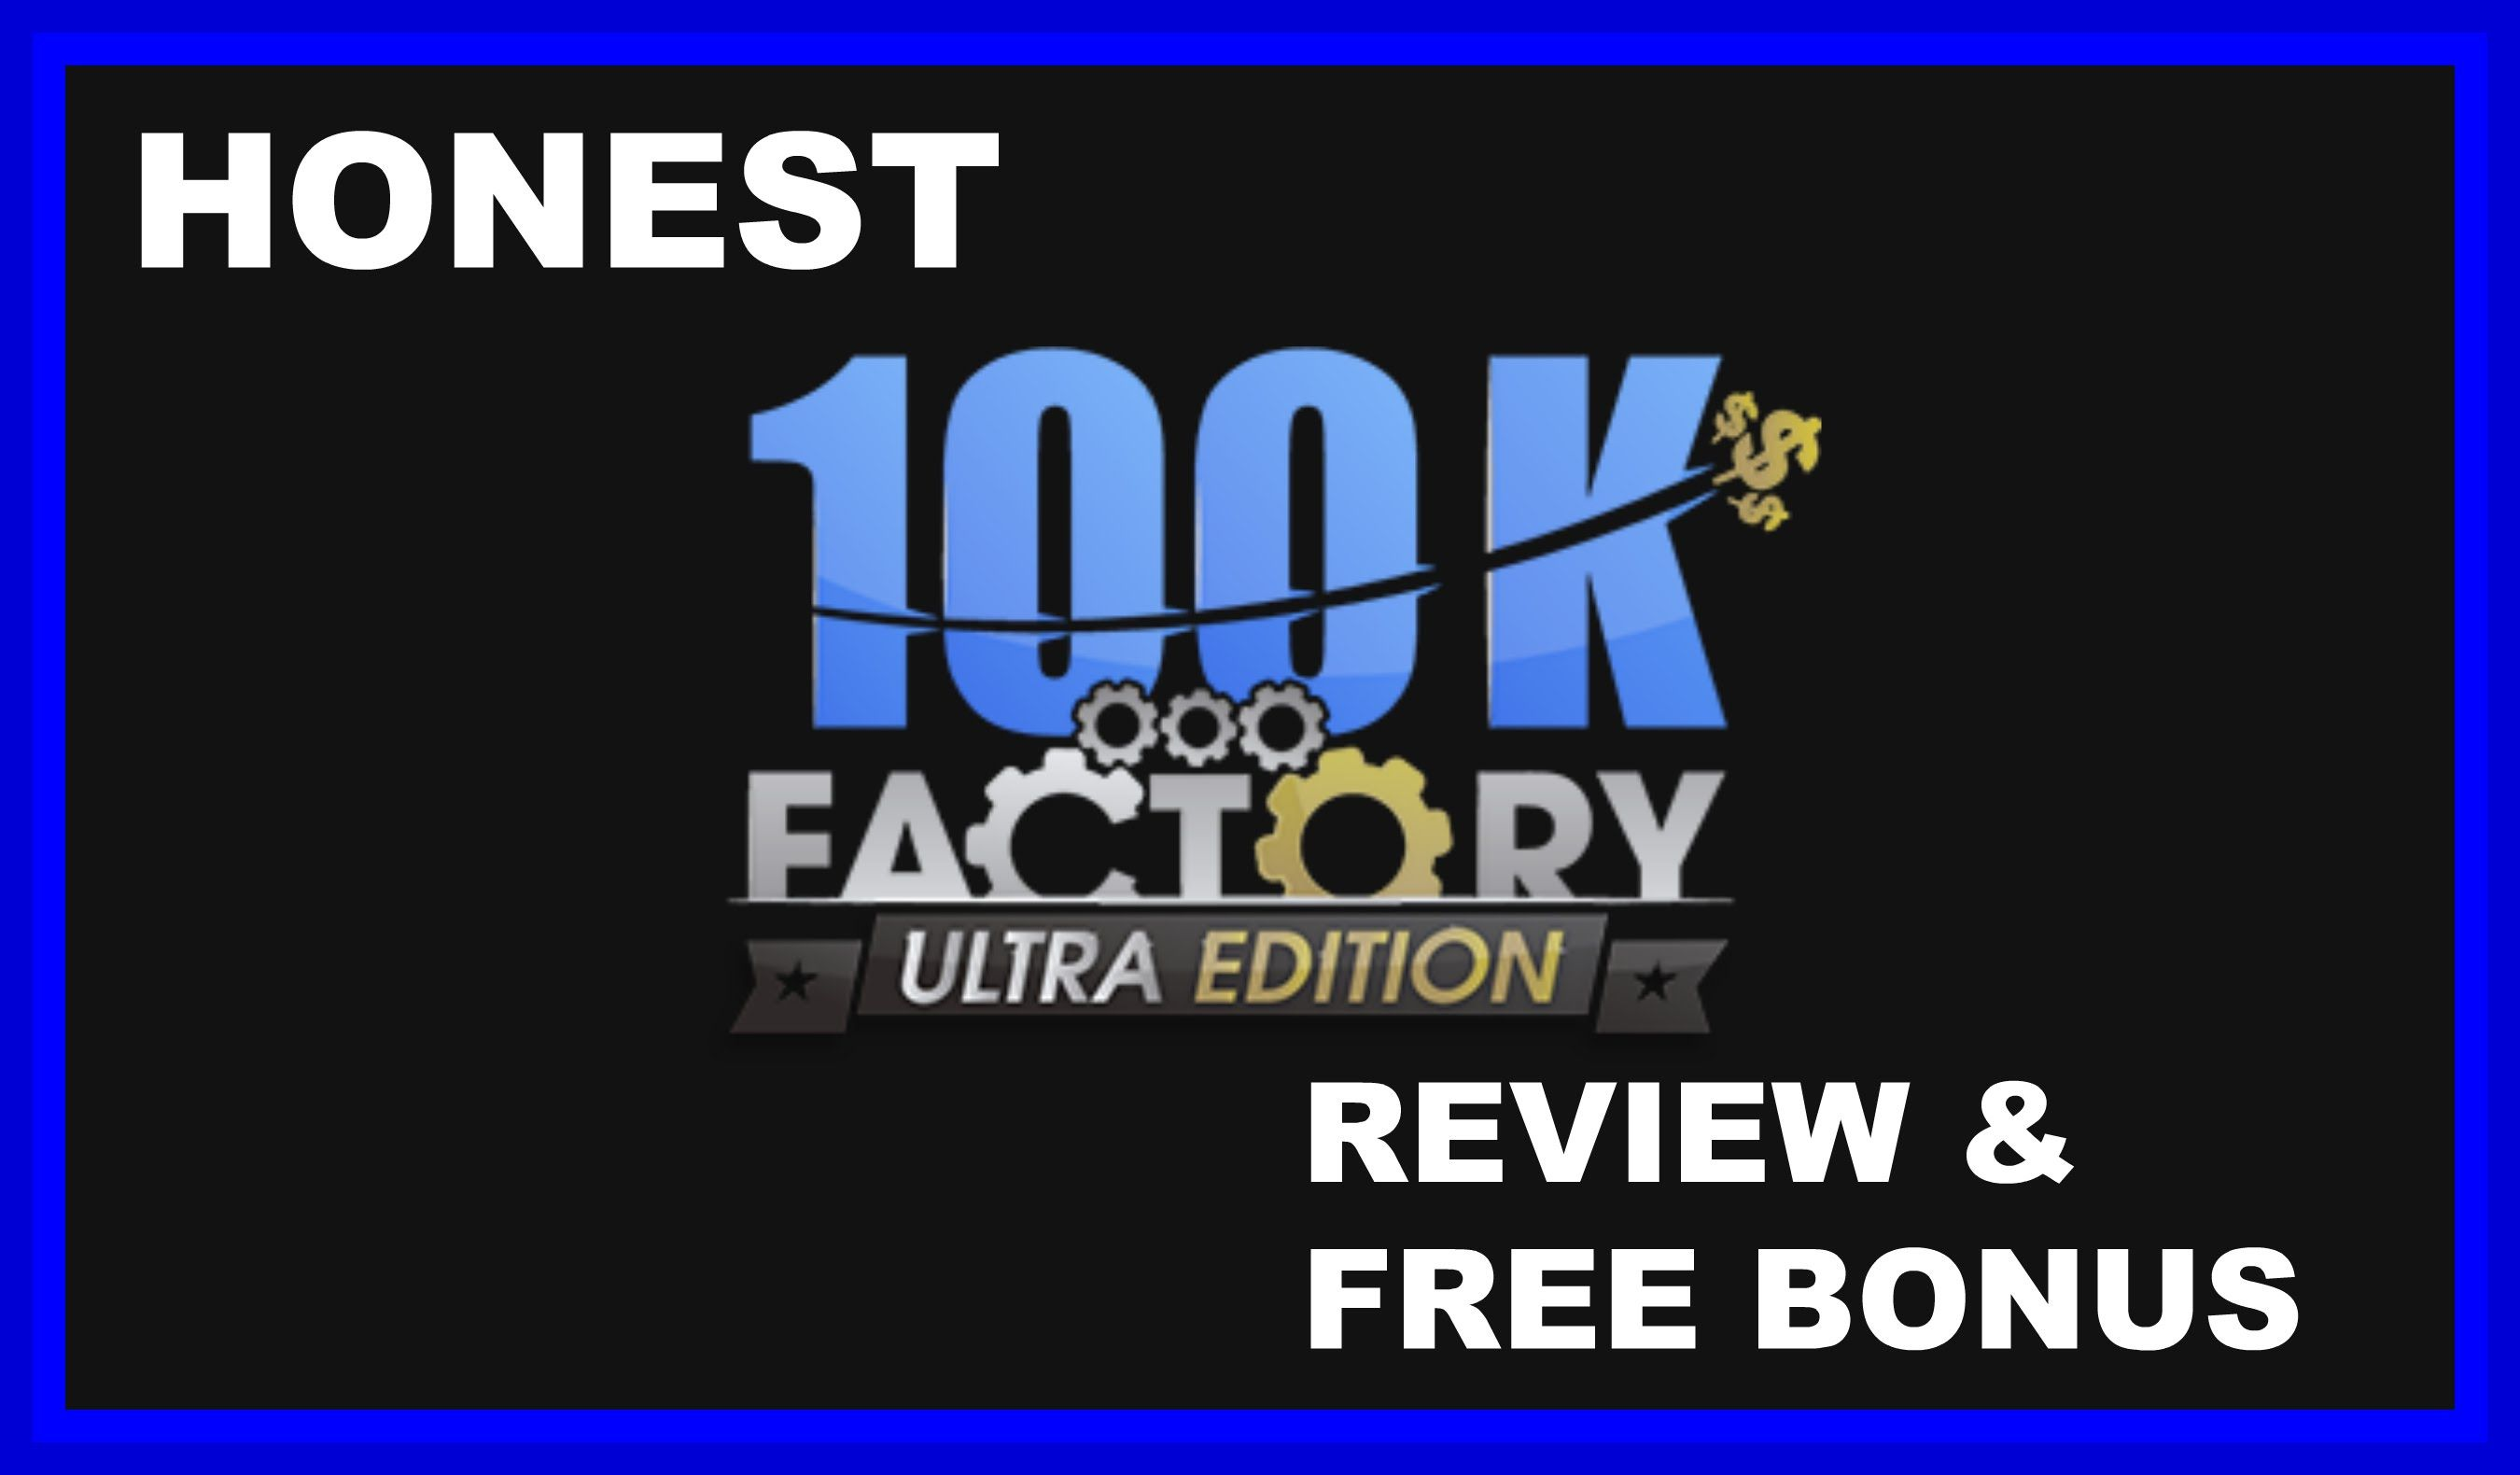 100K Factory Ultra Edition Review 100K Factory Ultra Edition Review and Bonus Tutorial; Get my Full 100K Factory Review and FREE BONUS https://youtu.be/iauBRNPE-i8